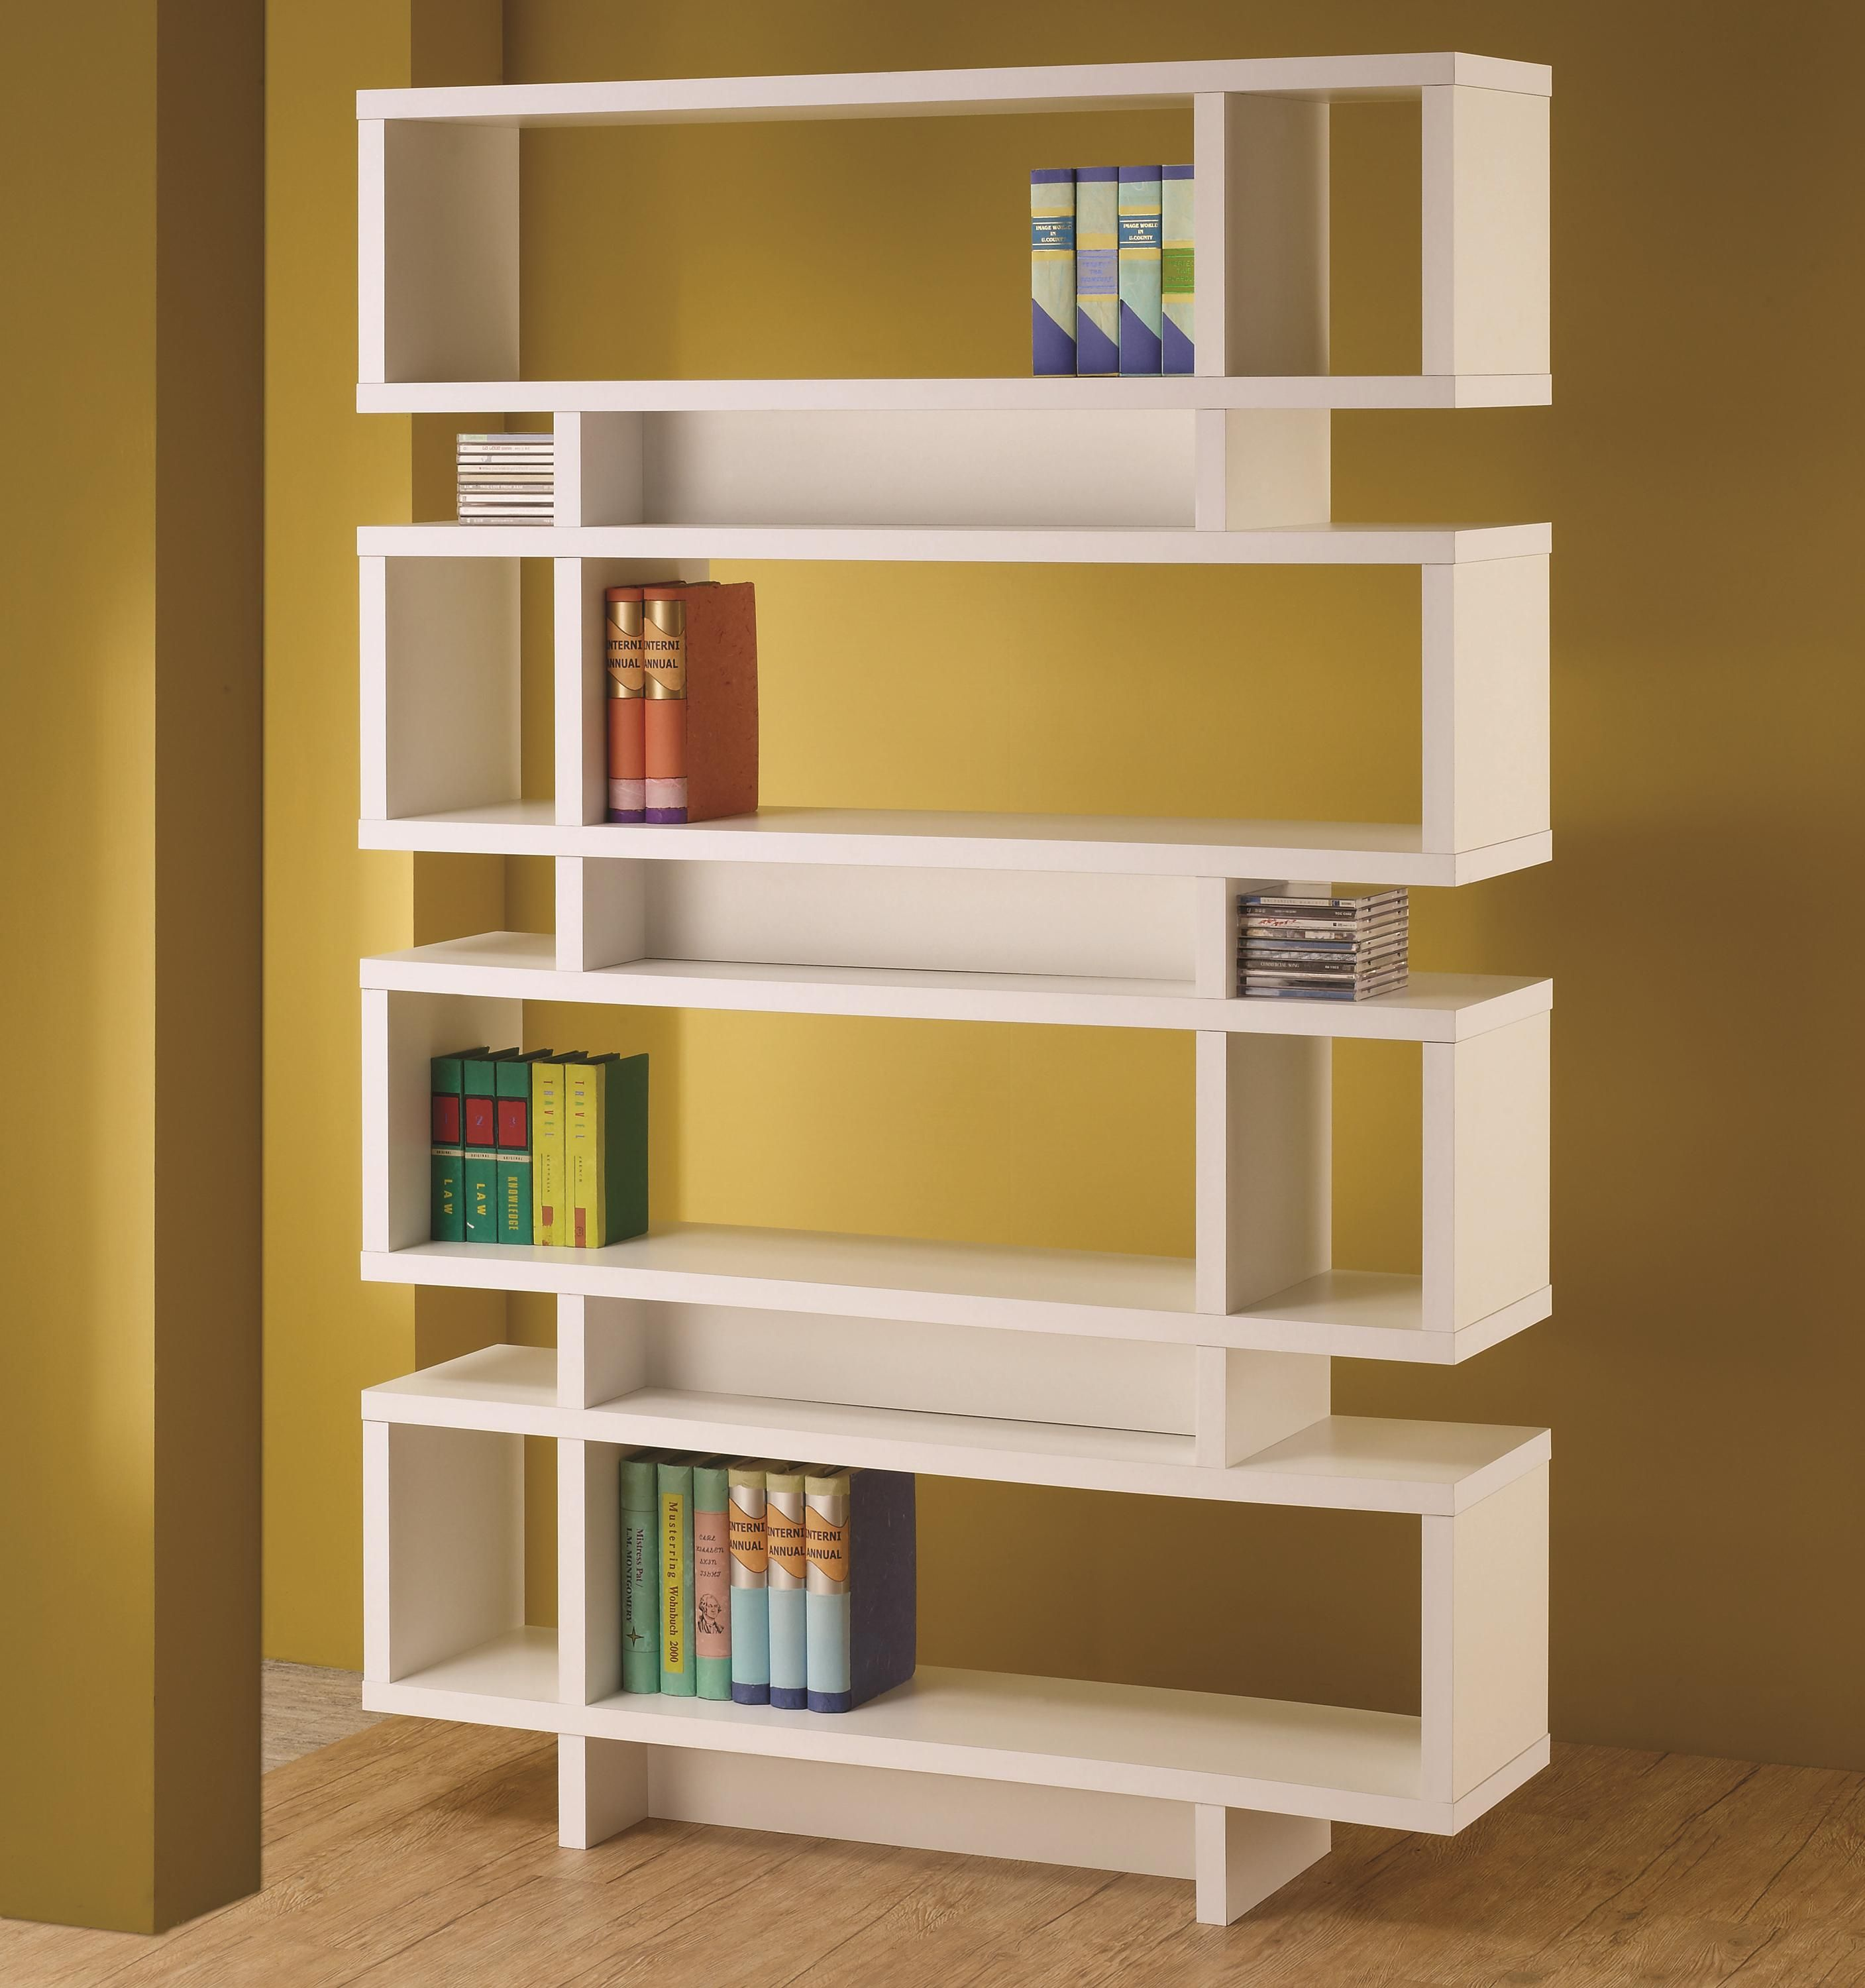 interior design shelves - 1000+ images about BOOK SS & SHLVS on Pinterest Bookcases ...